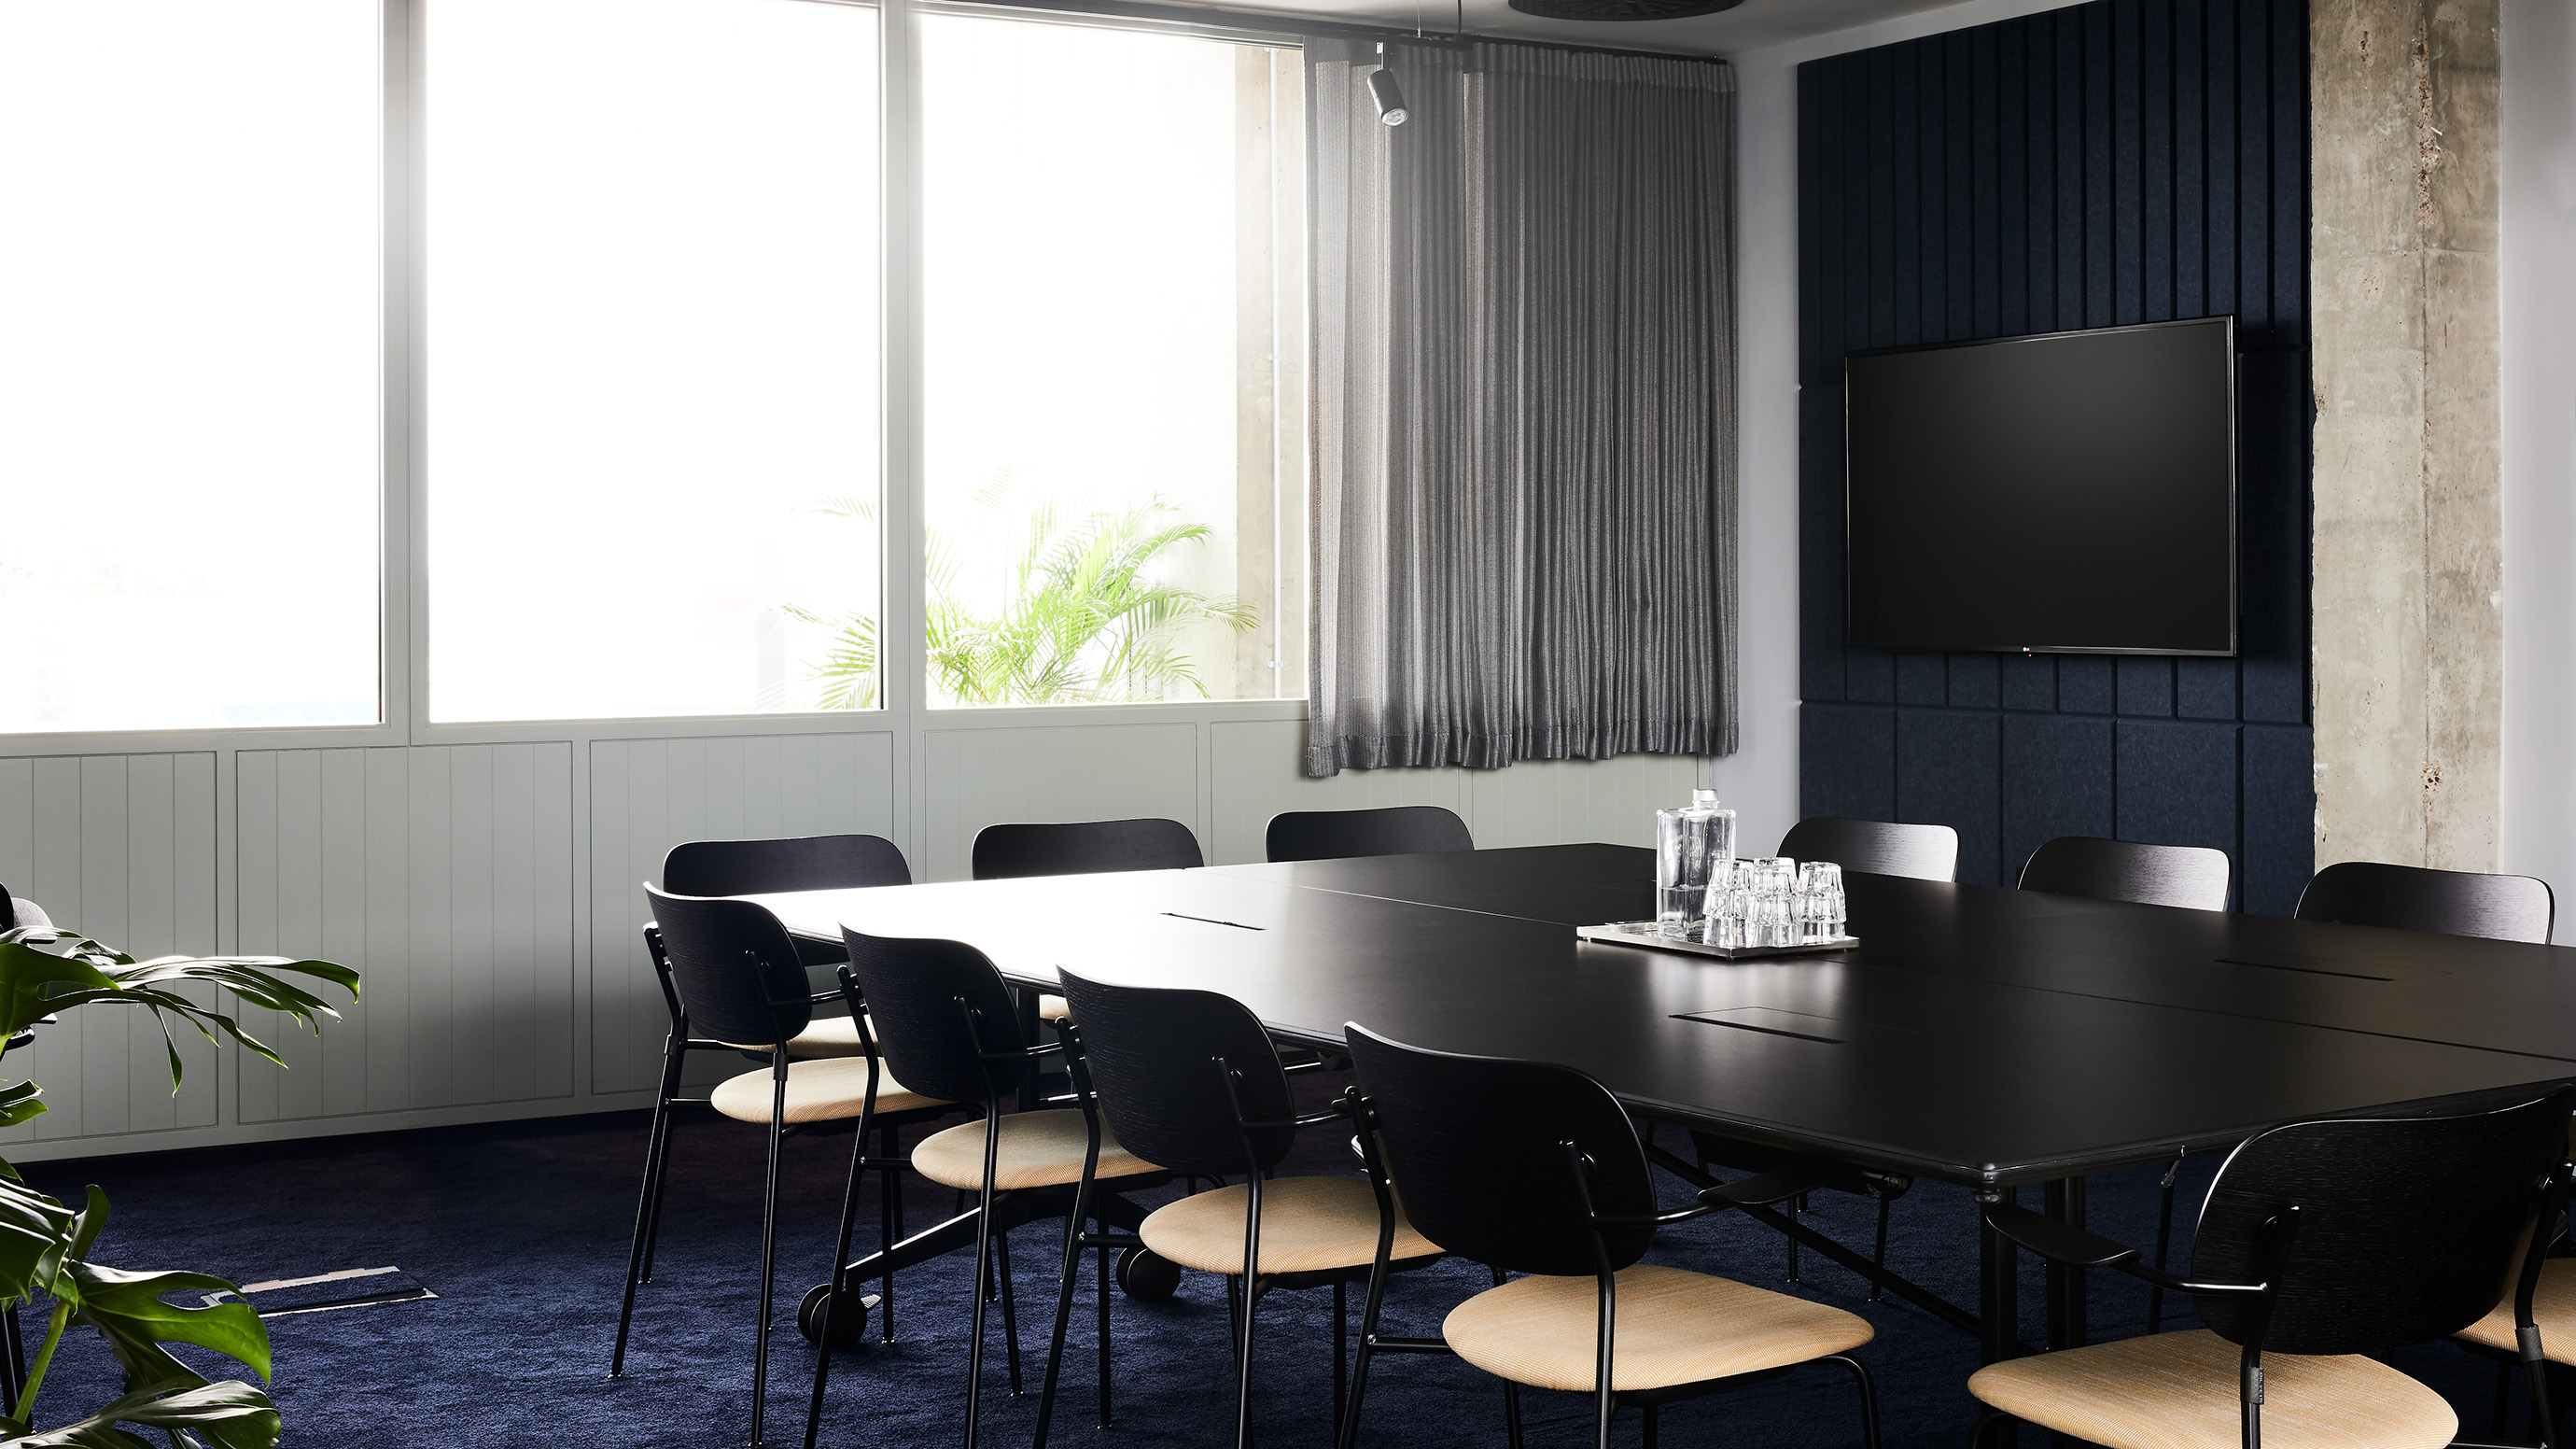 Medium meeting room with black table and wooden chairs and grey curtains at TOG building One Lyric Square London